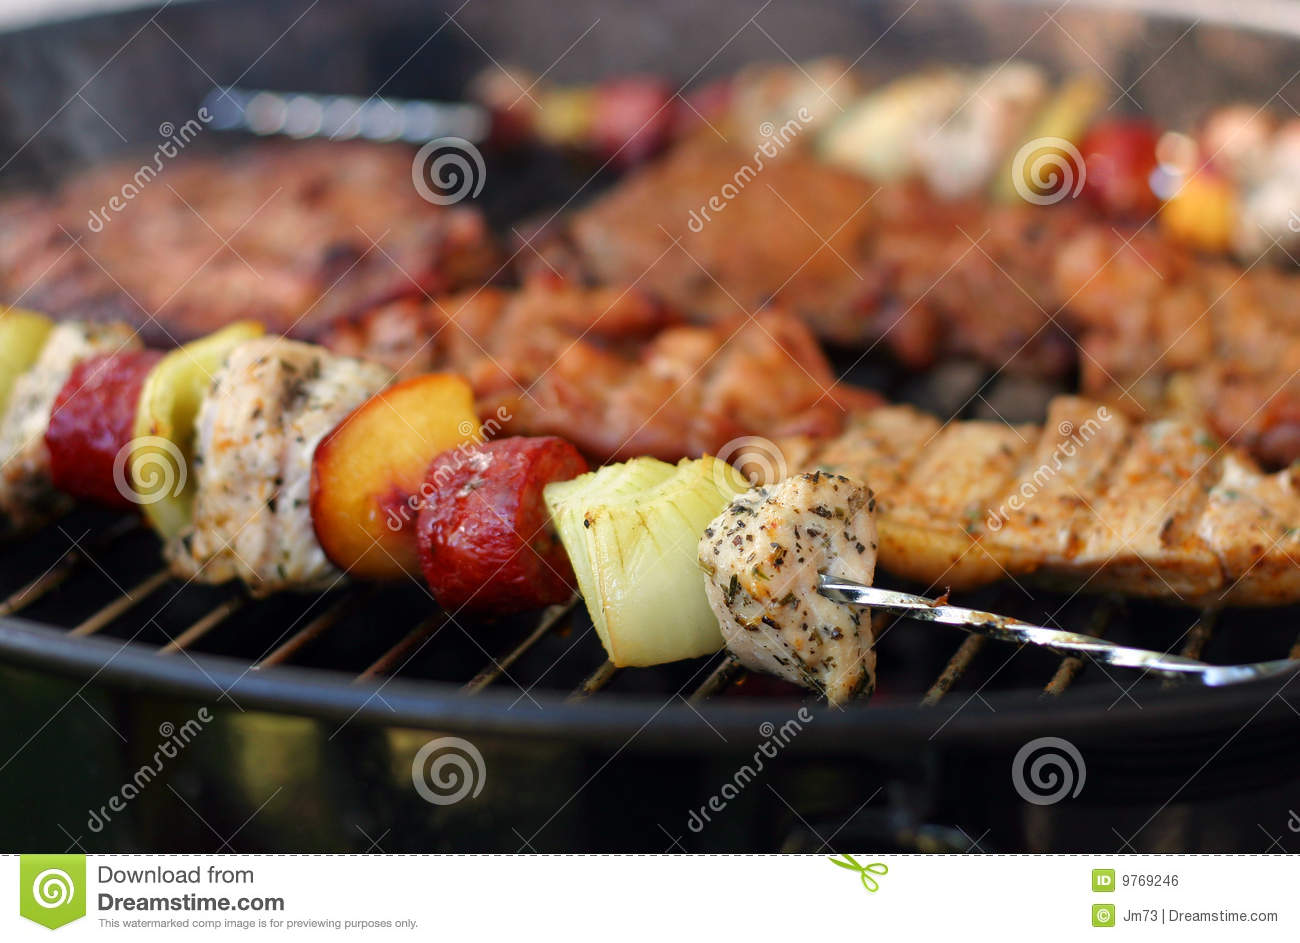 Meat and skewers on the grill